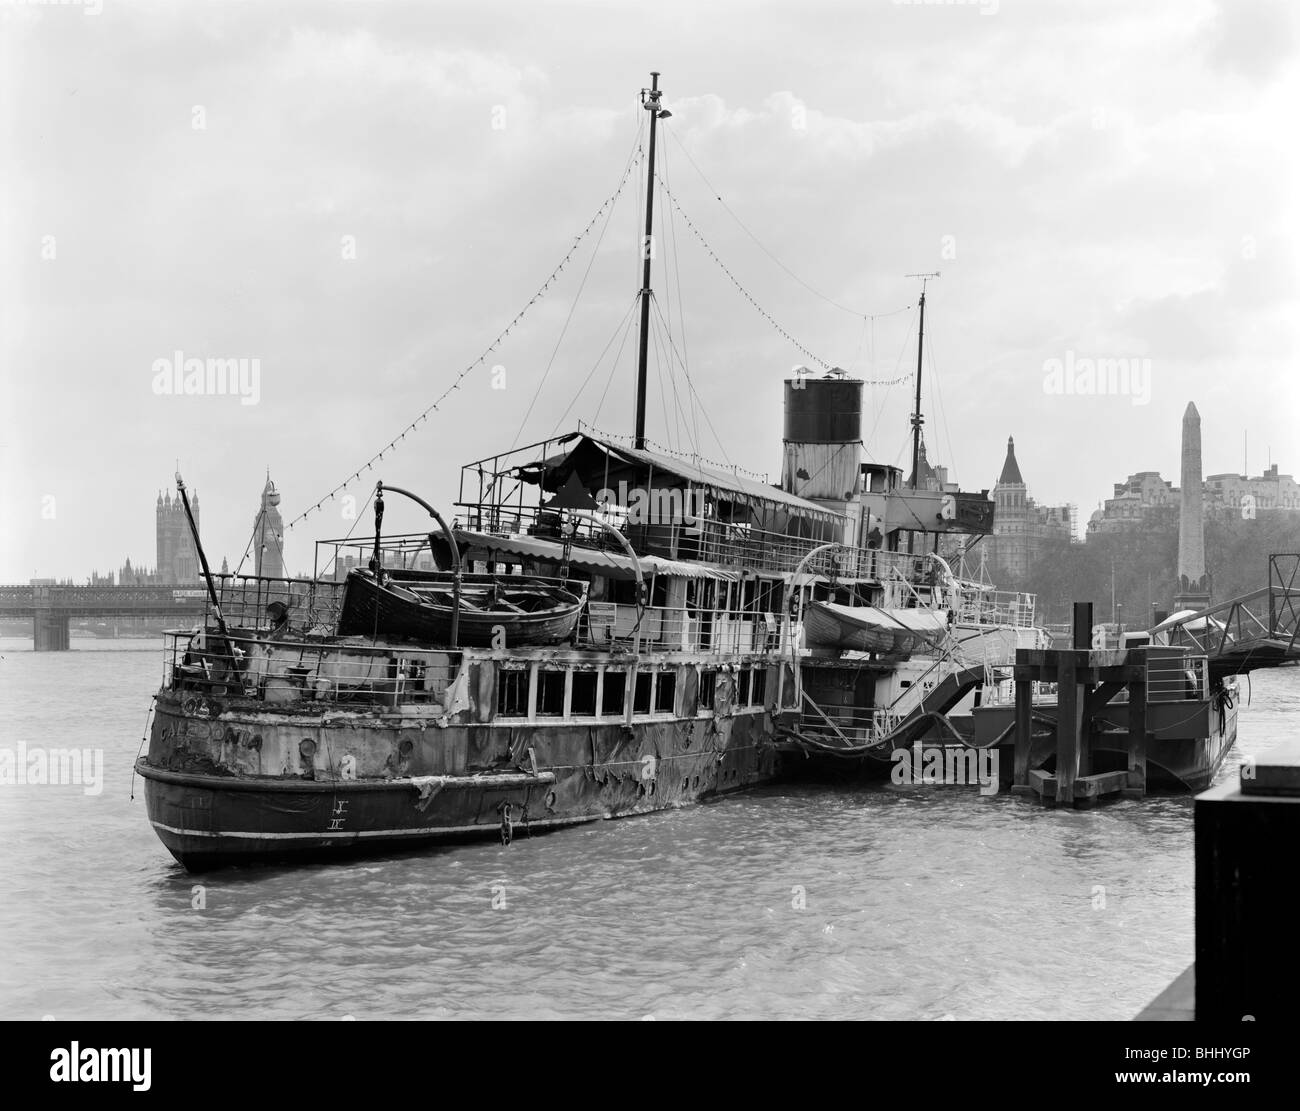 The old caledonia derelict and fire damaged victoria for The caledonia